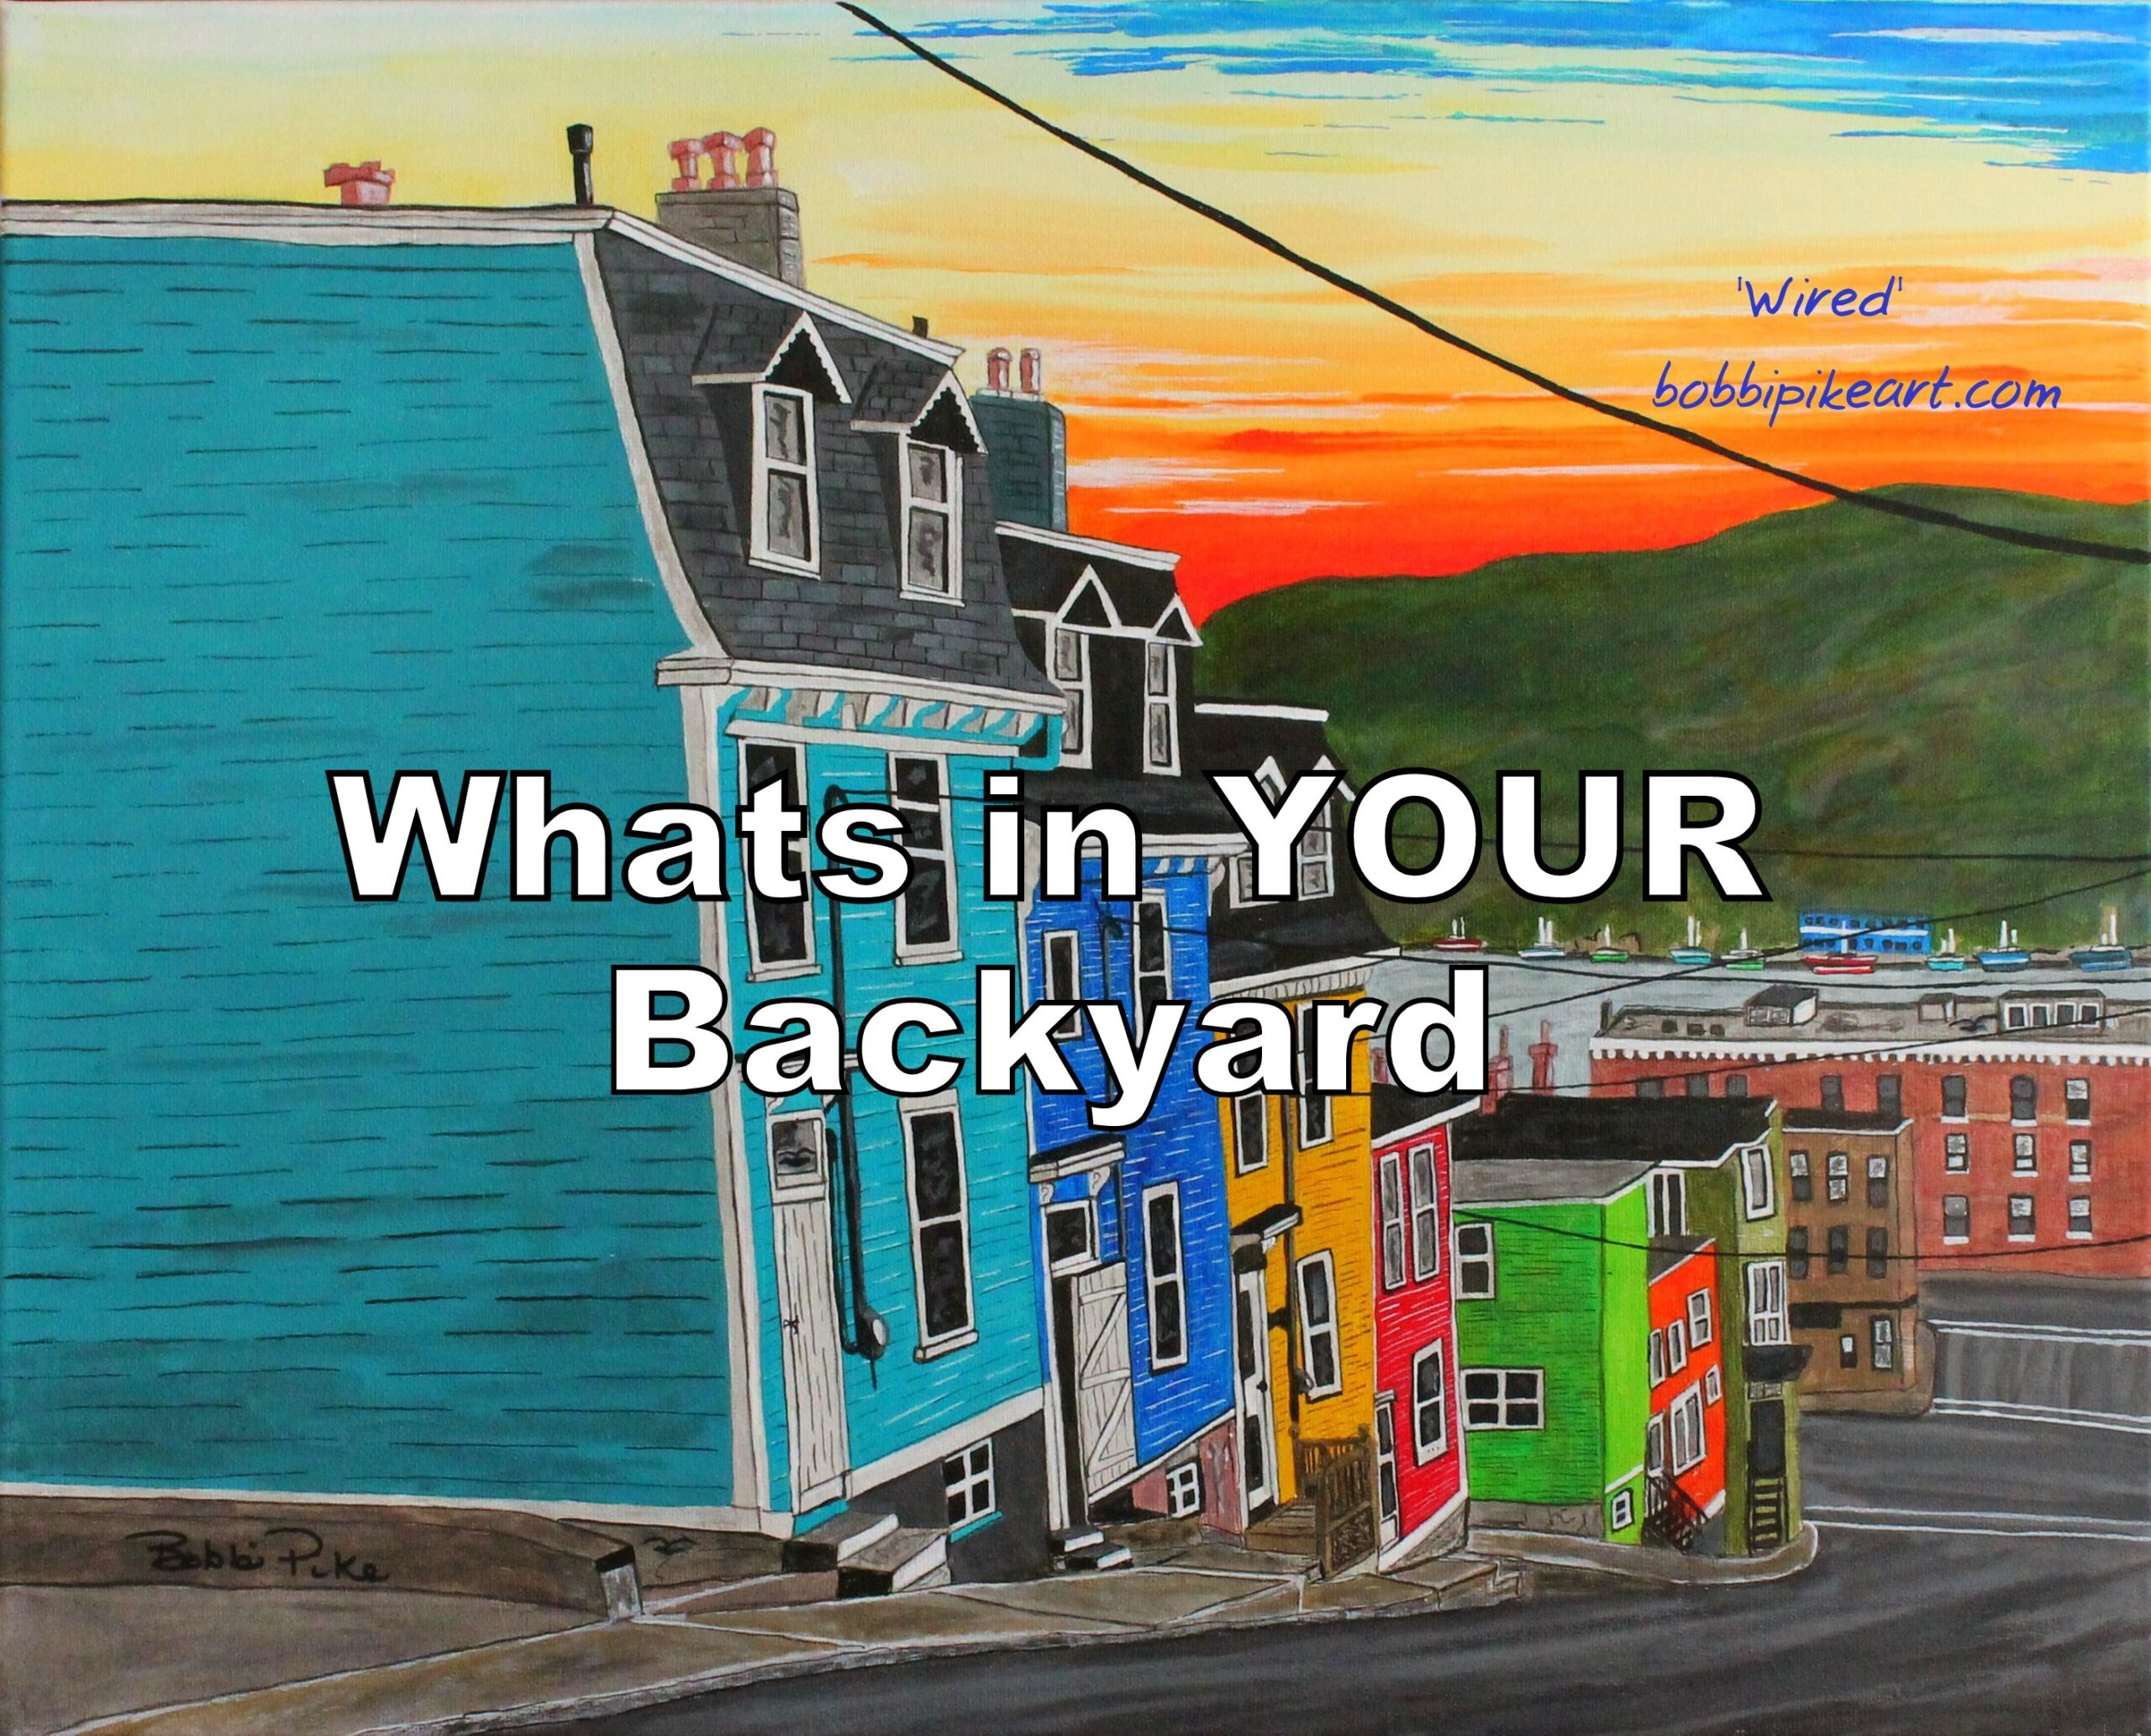 Whats in your backyard